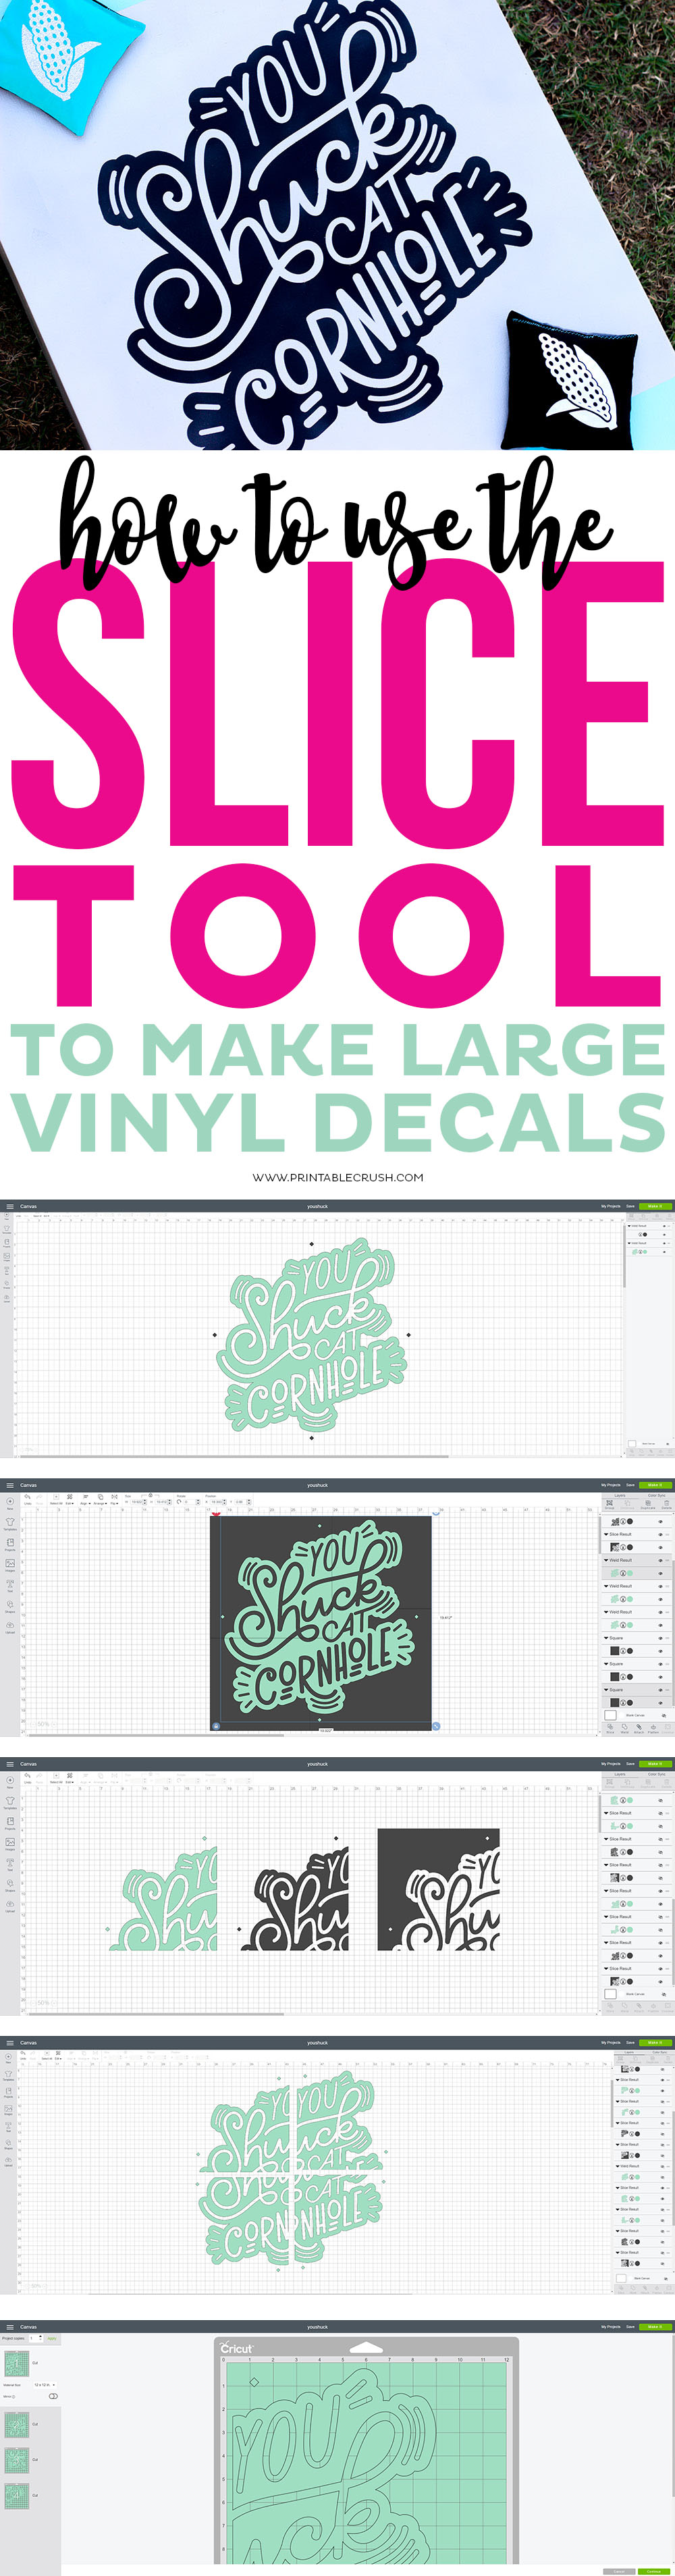 How to Use the Slice Tool to Make Large Vinyl Decals via @printablecrush